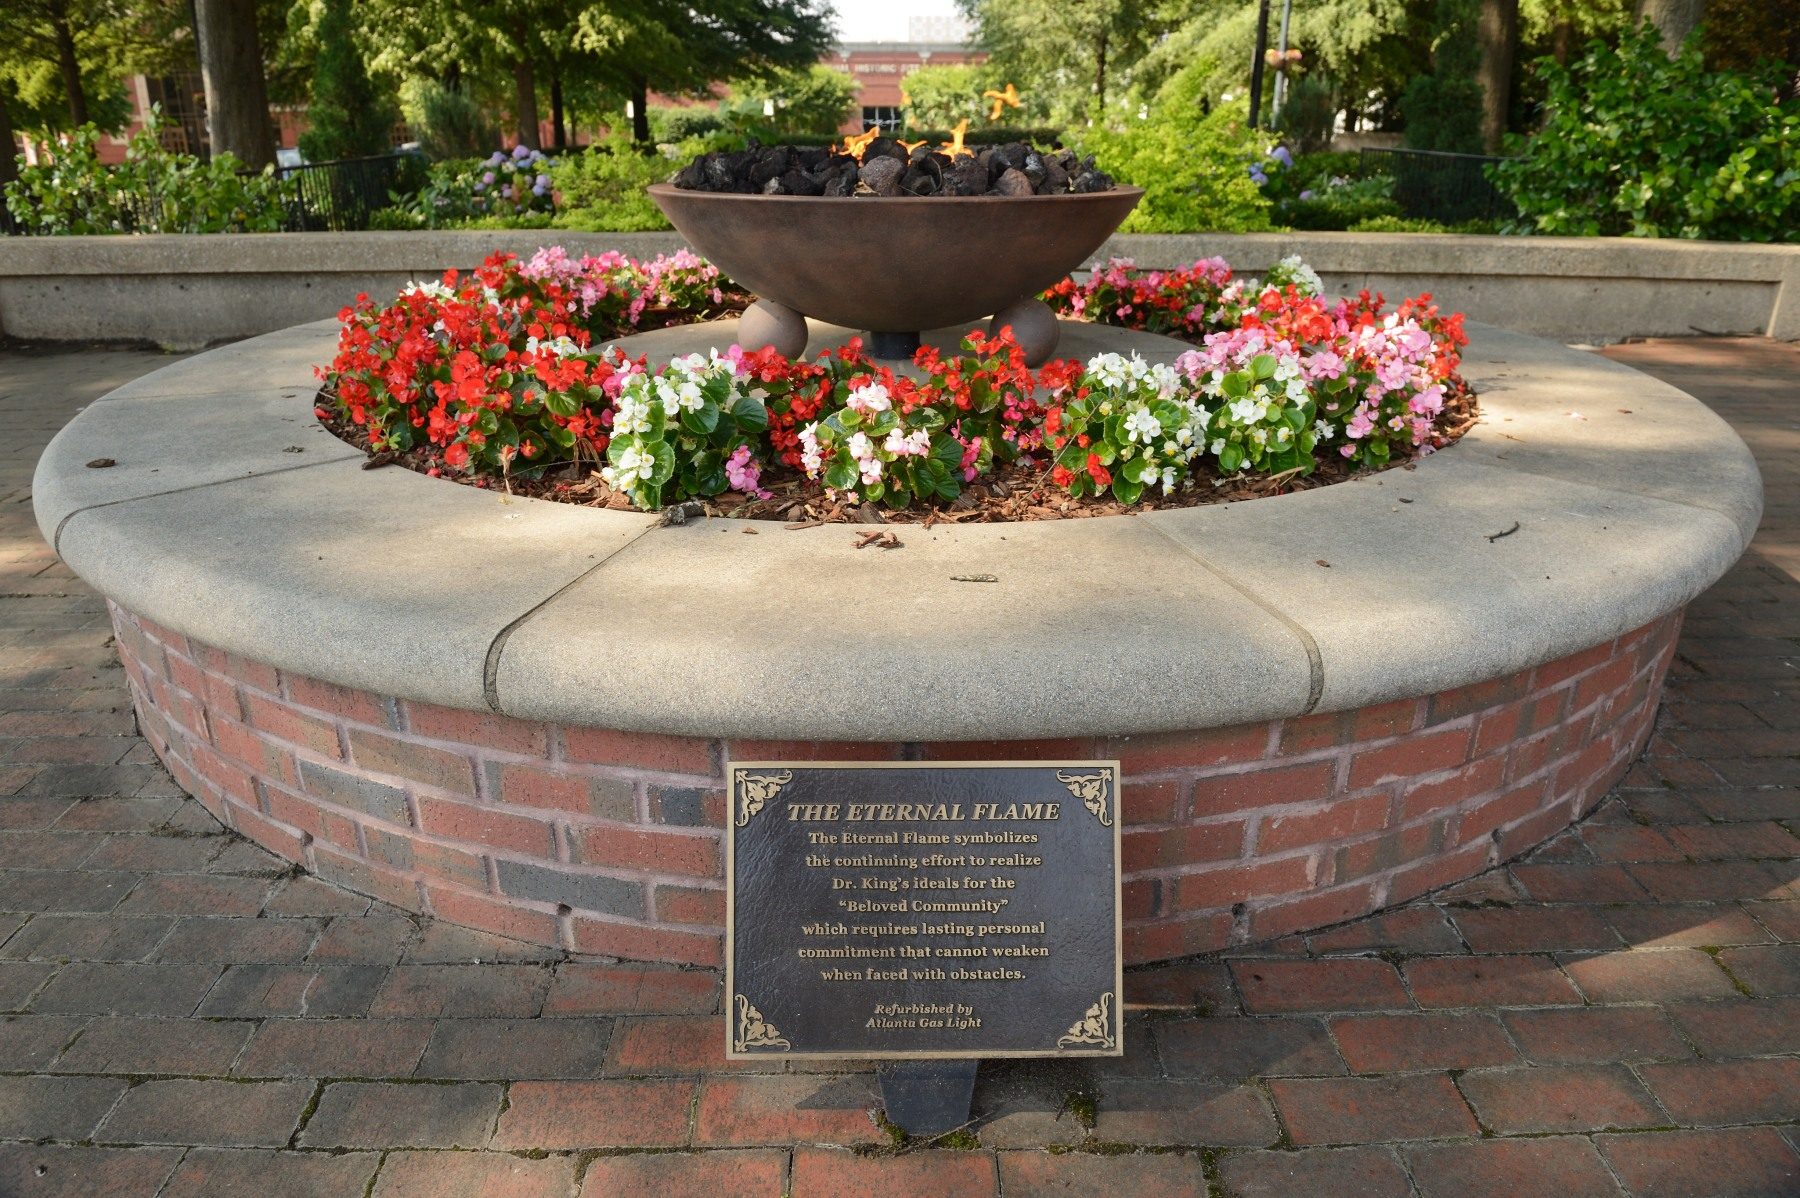 "Directly across from the crypt is The Eternal Flame. It symbolizes the continuing effort to realize Dr. King's dream of the ""Beloved Community"", which was his vision for a world of justice, peace and equality for all mankind."